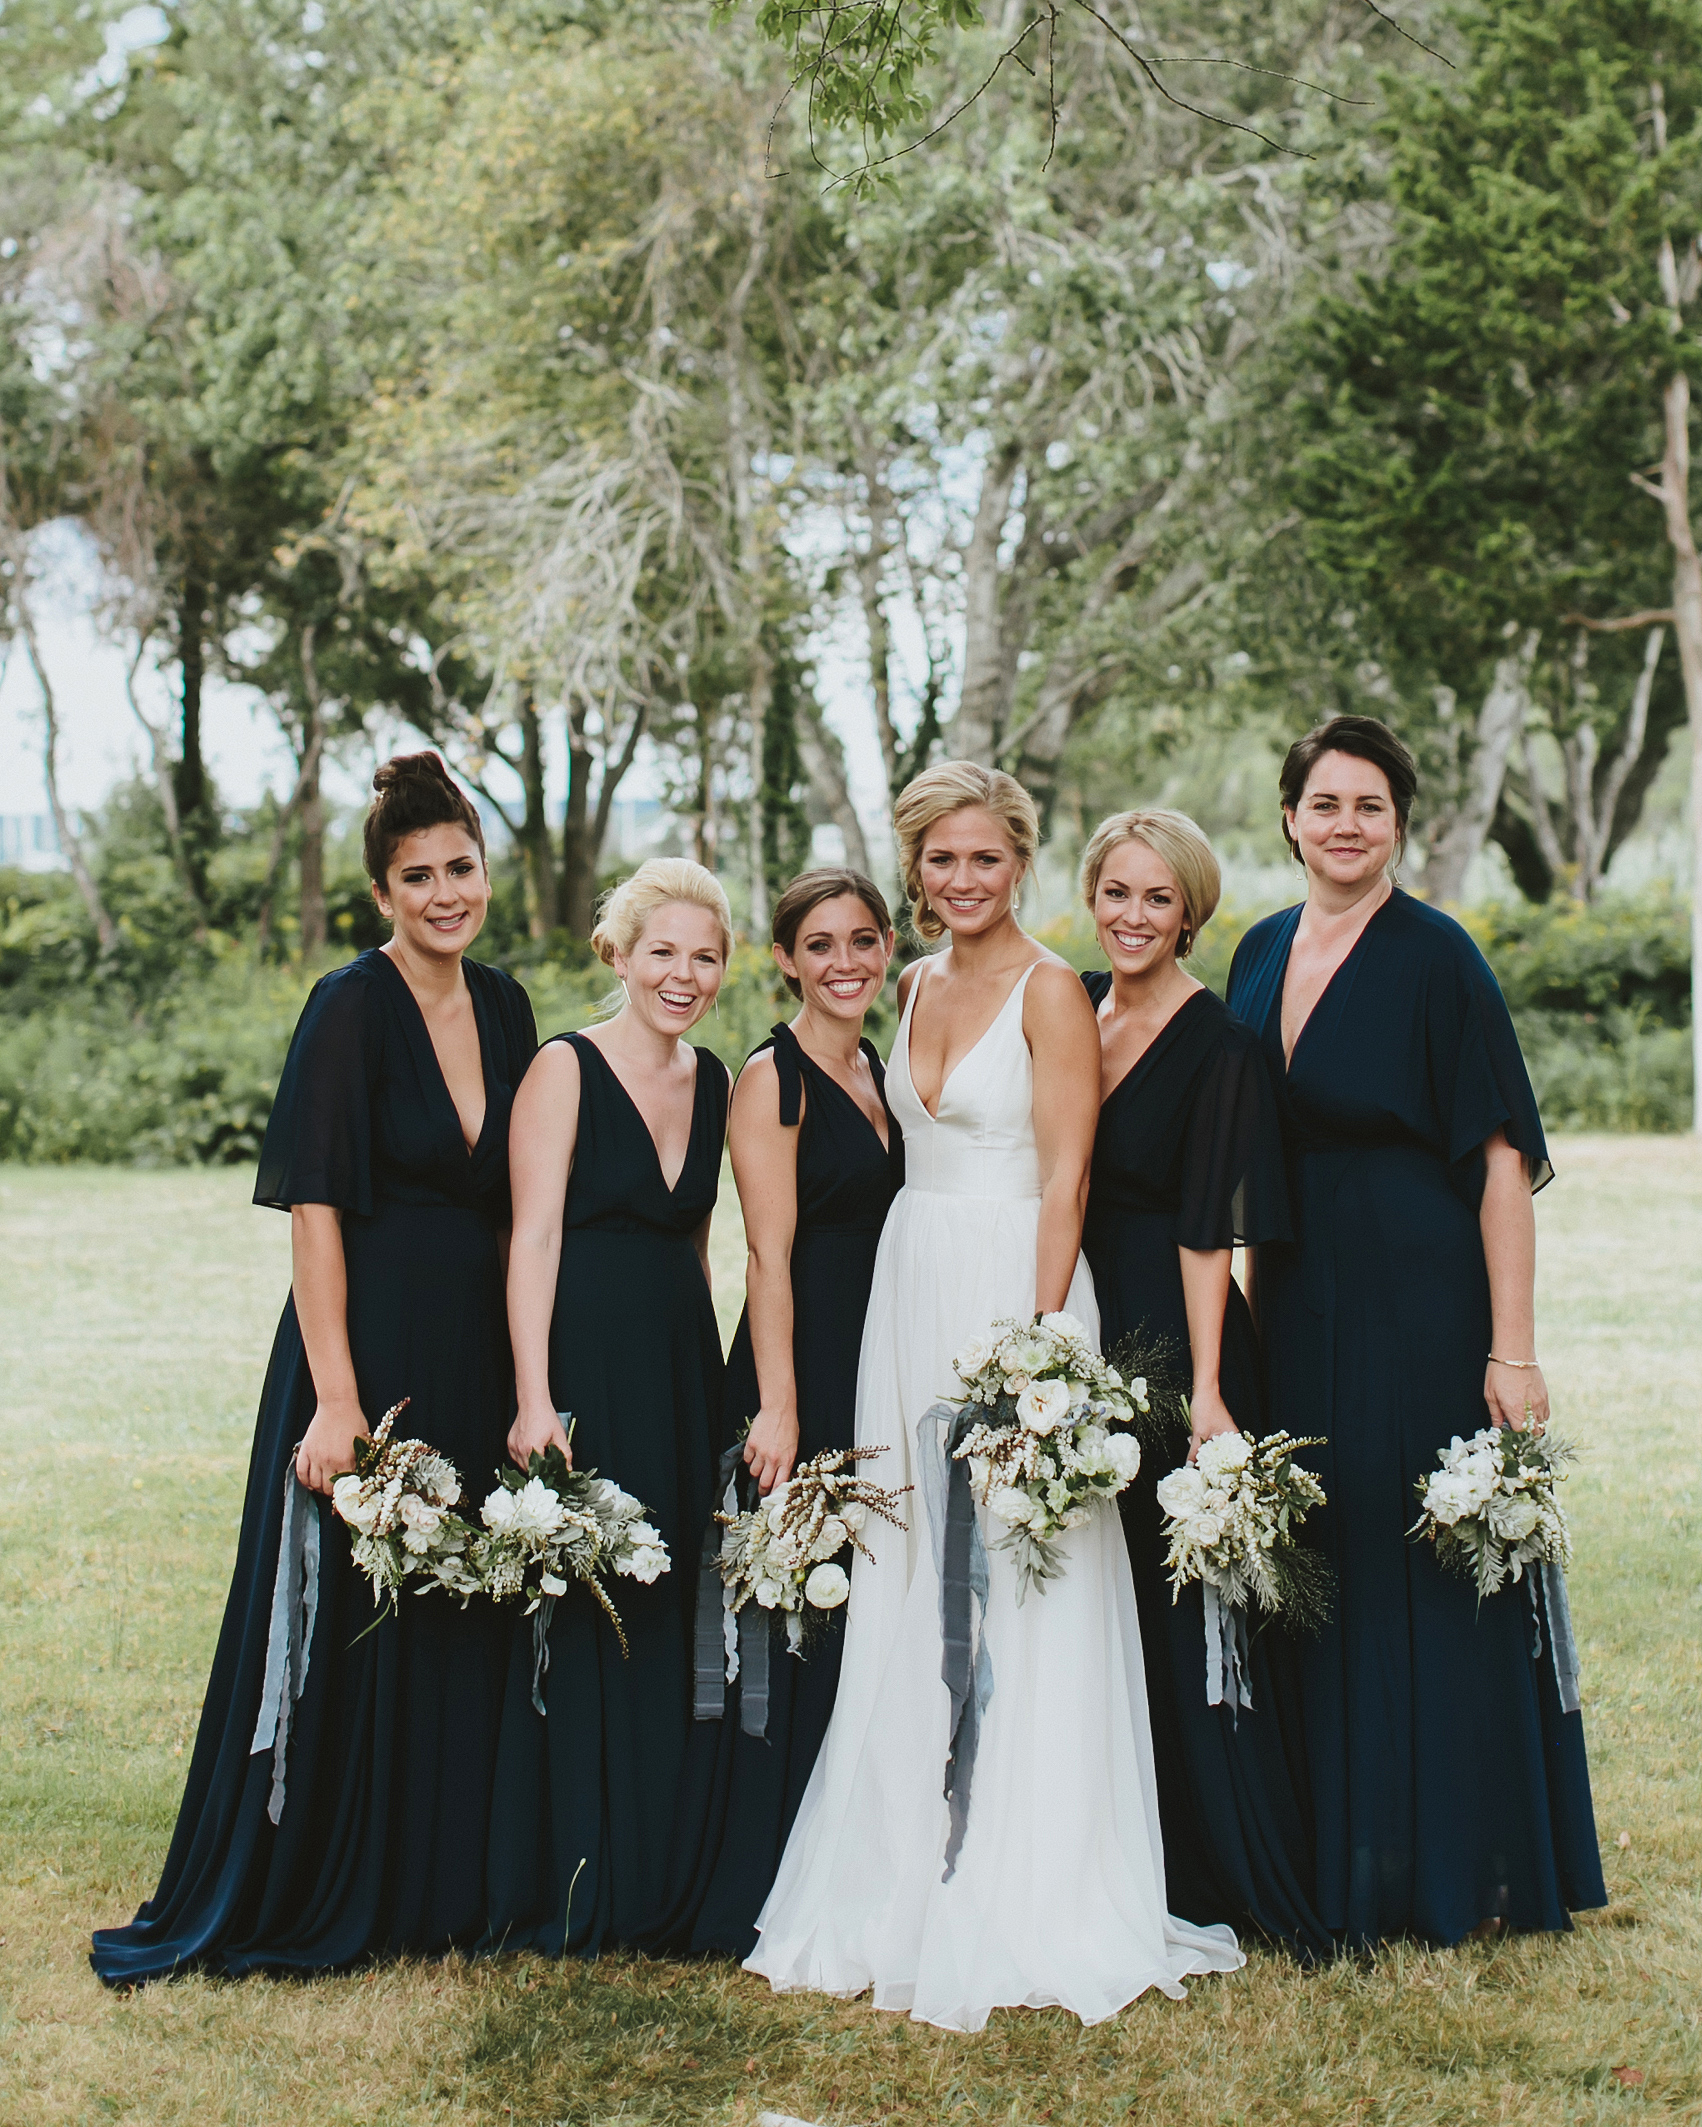 hadley corey wedding bridesmaids